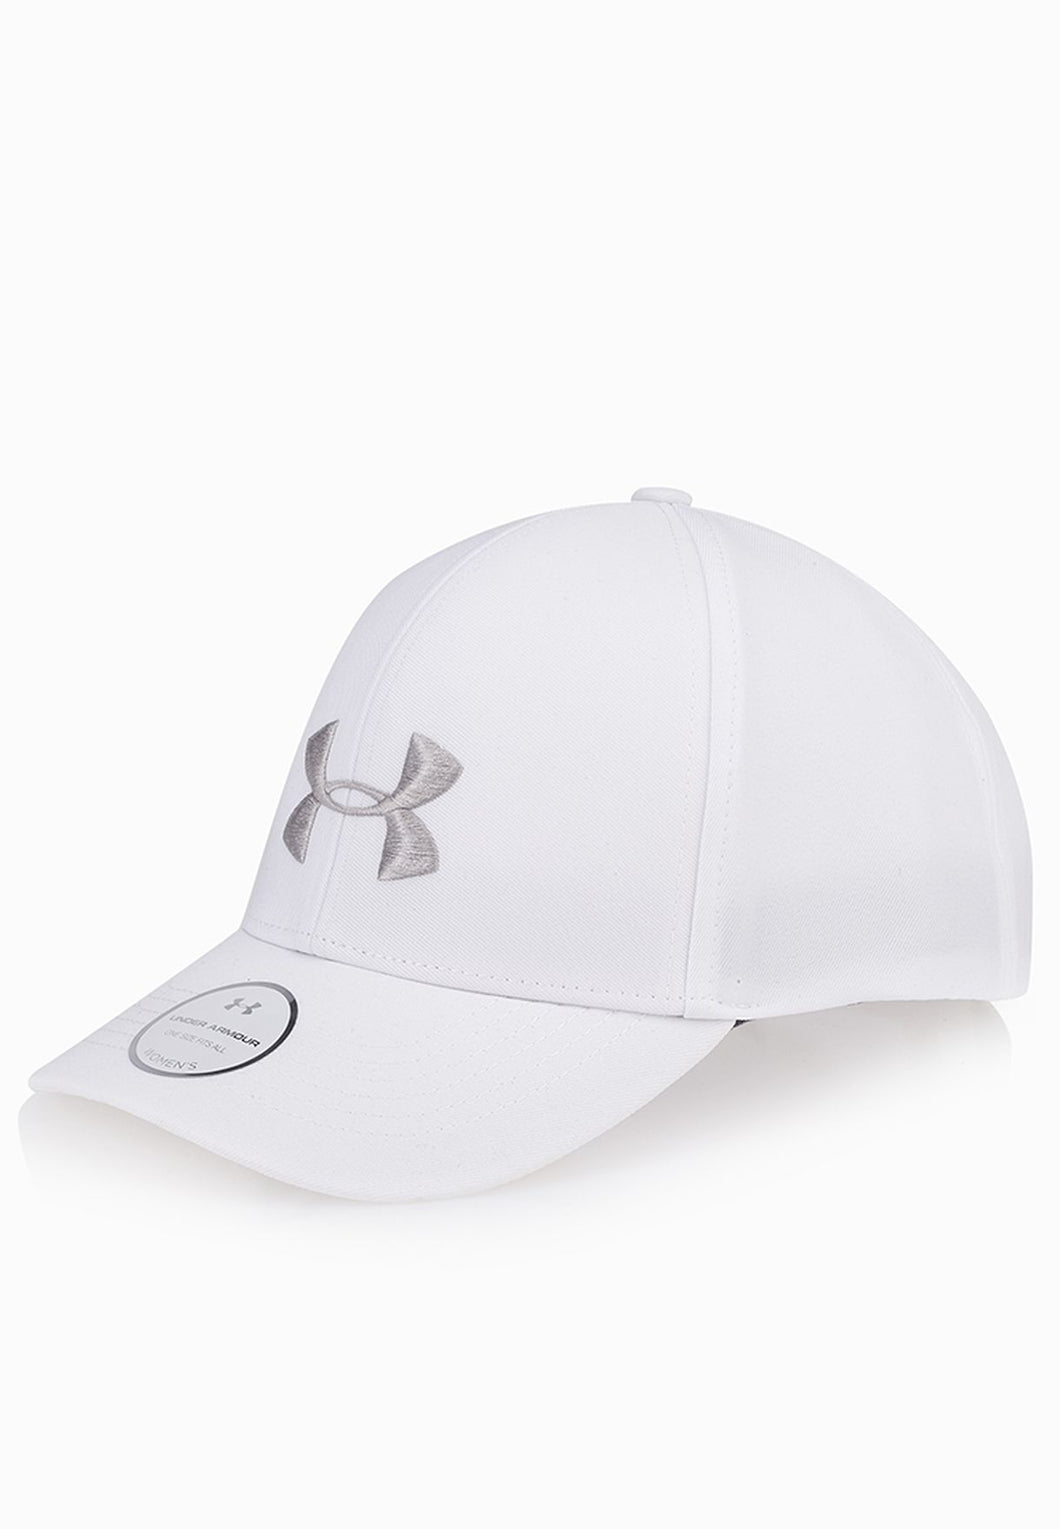 Under Armour Adjustable Cap - White - SA GOLF ONLINE